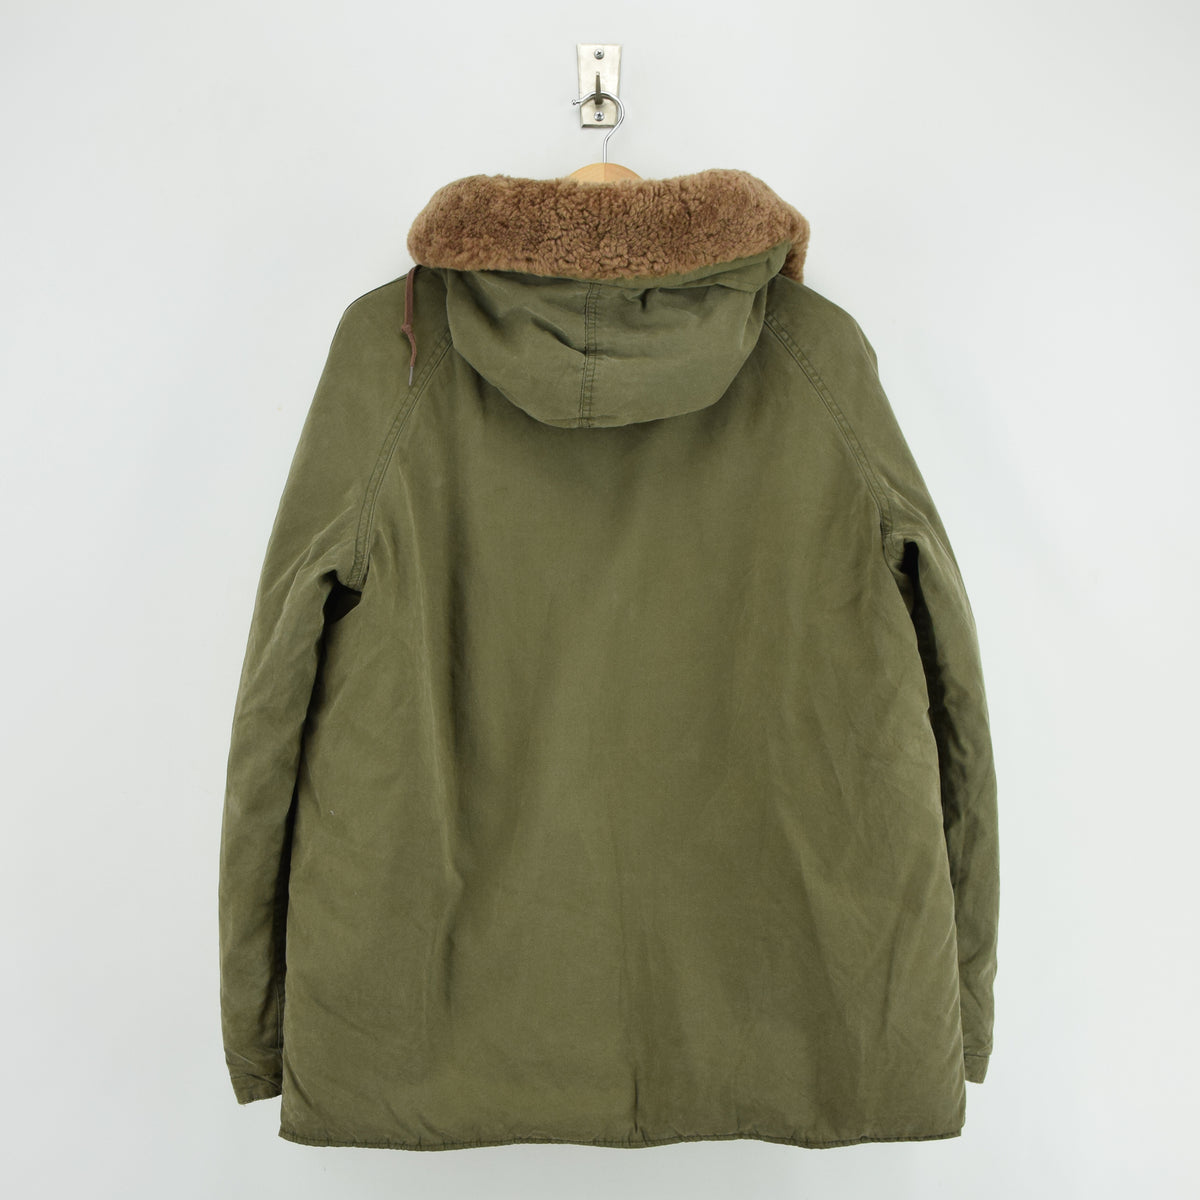 Ralph Lauren Polo Military Style Green Down Parka Jacket Shearling Trim Hood M back